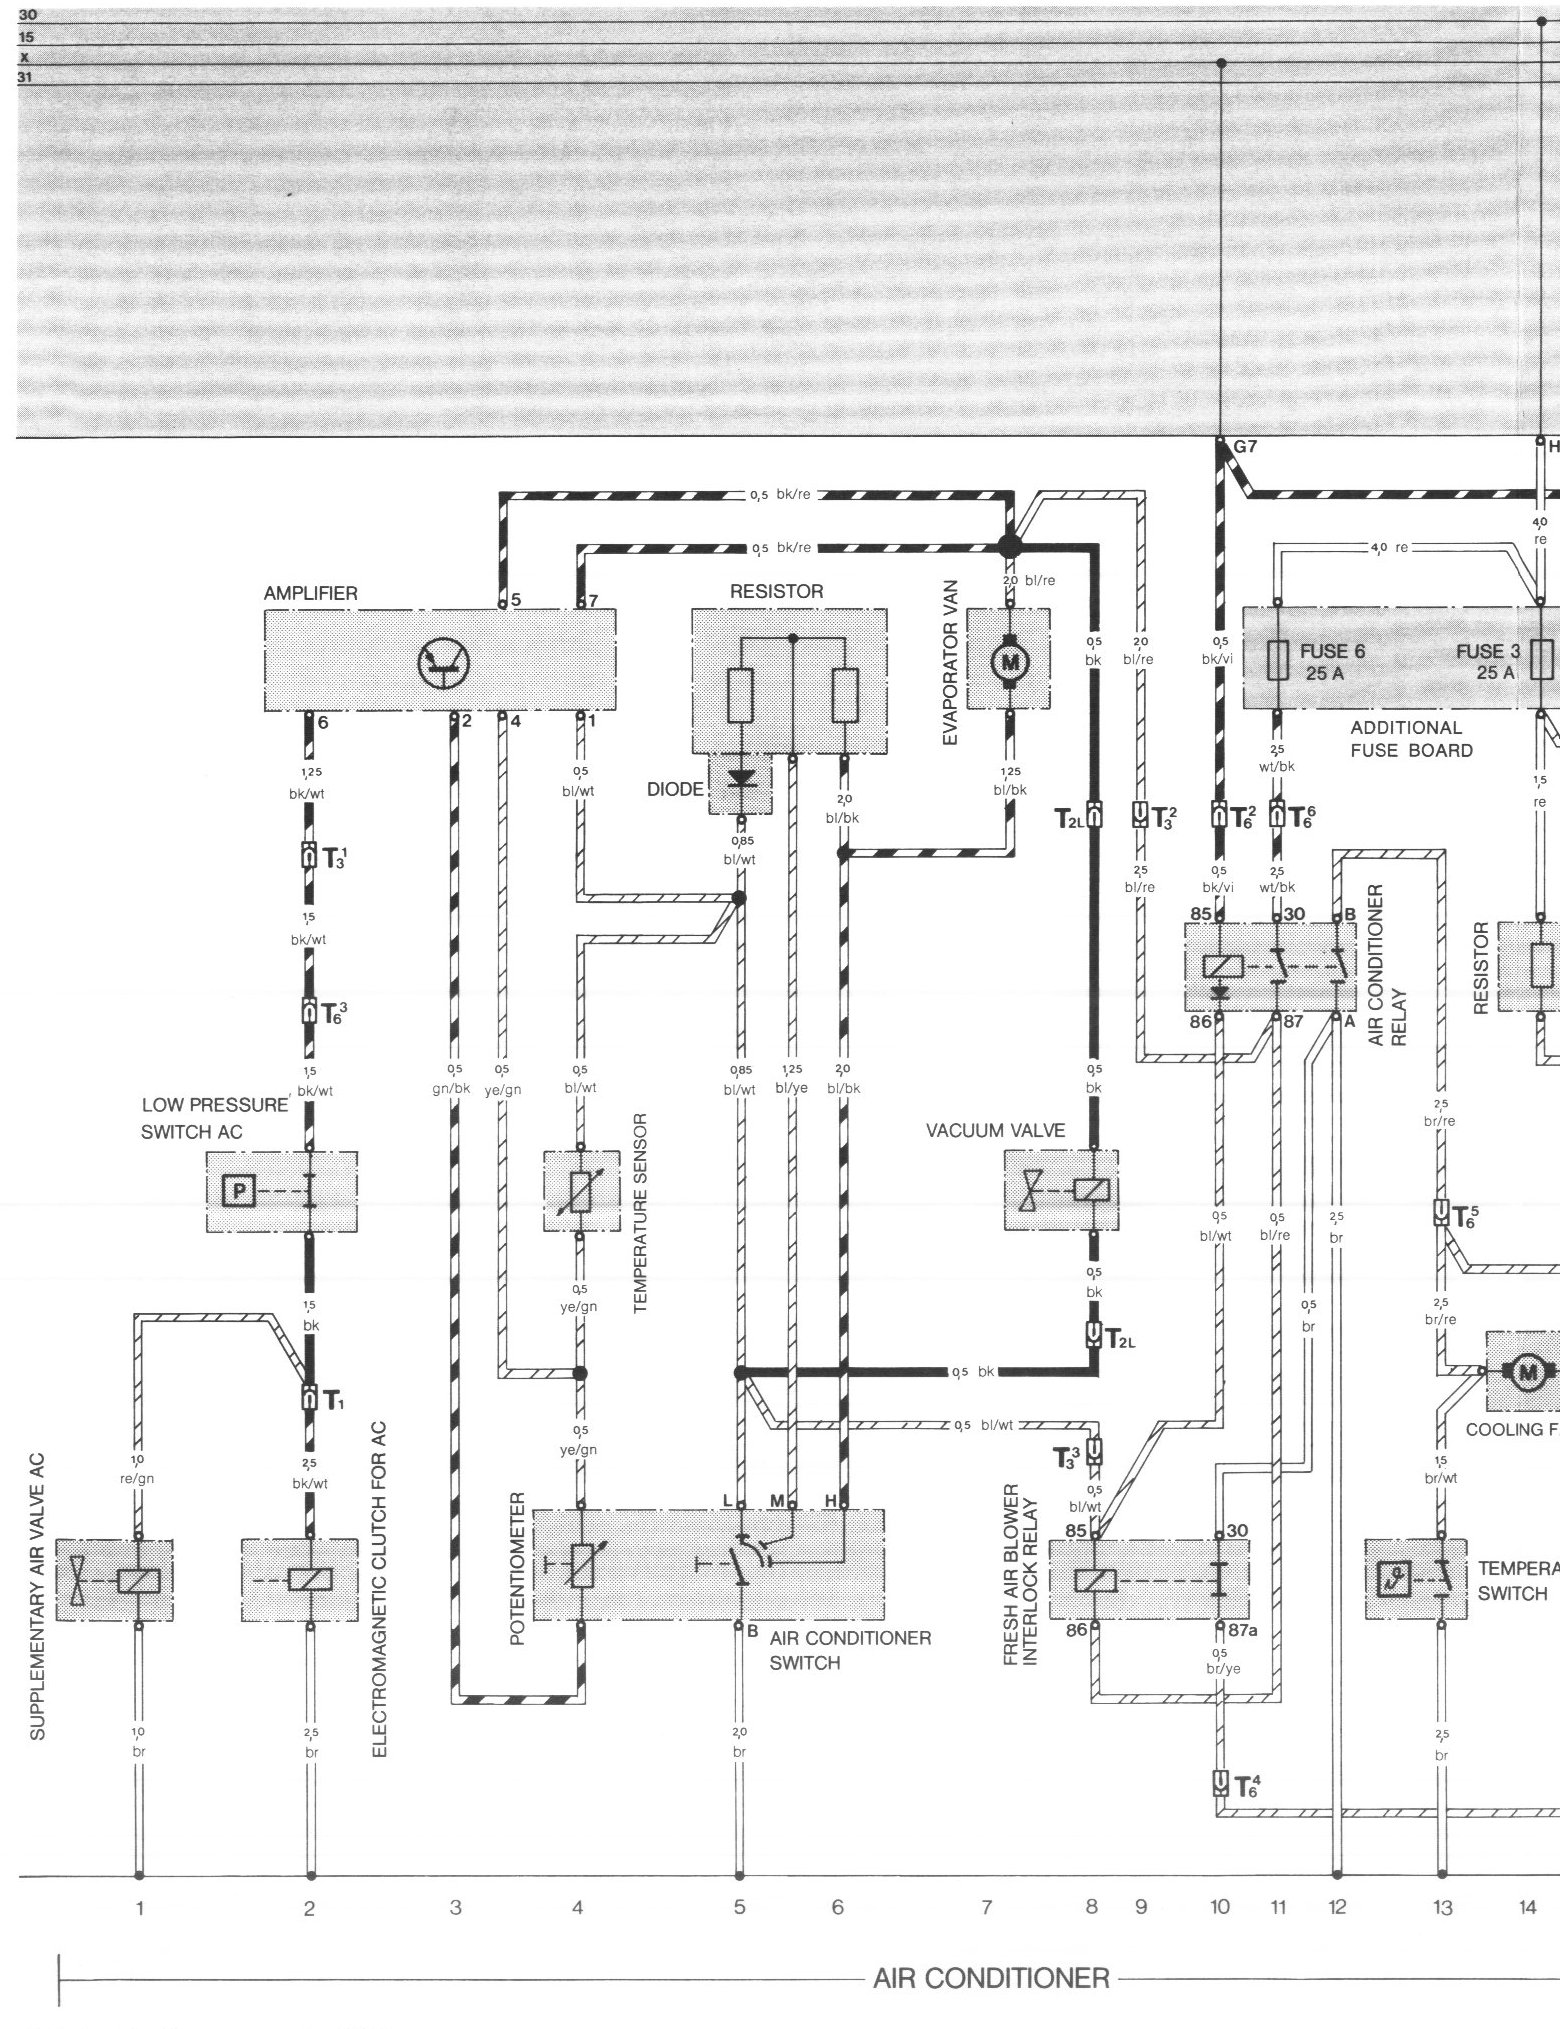 944_84_AC_1 pelican parts porsche 924 944 electrical diagrams 1983 porsche 944 fuse box diagram at gsmx.co